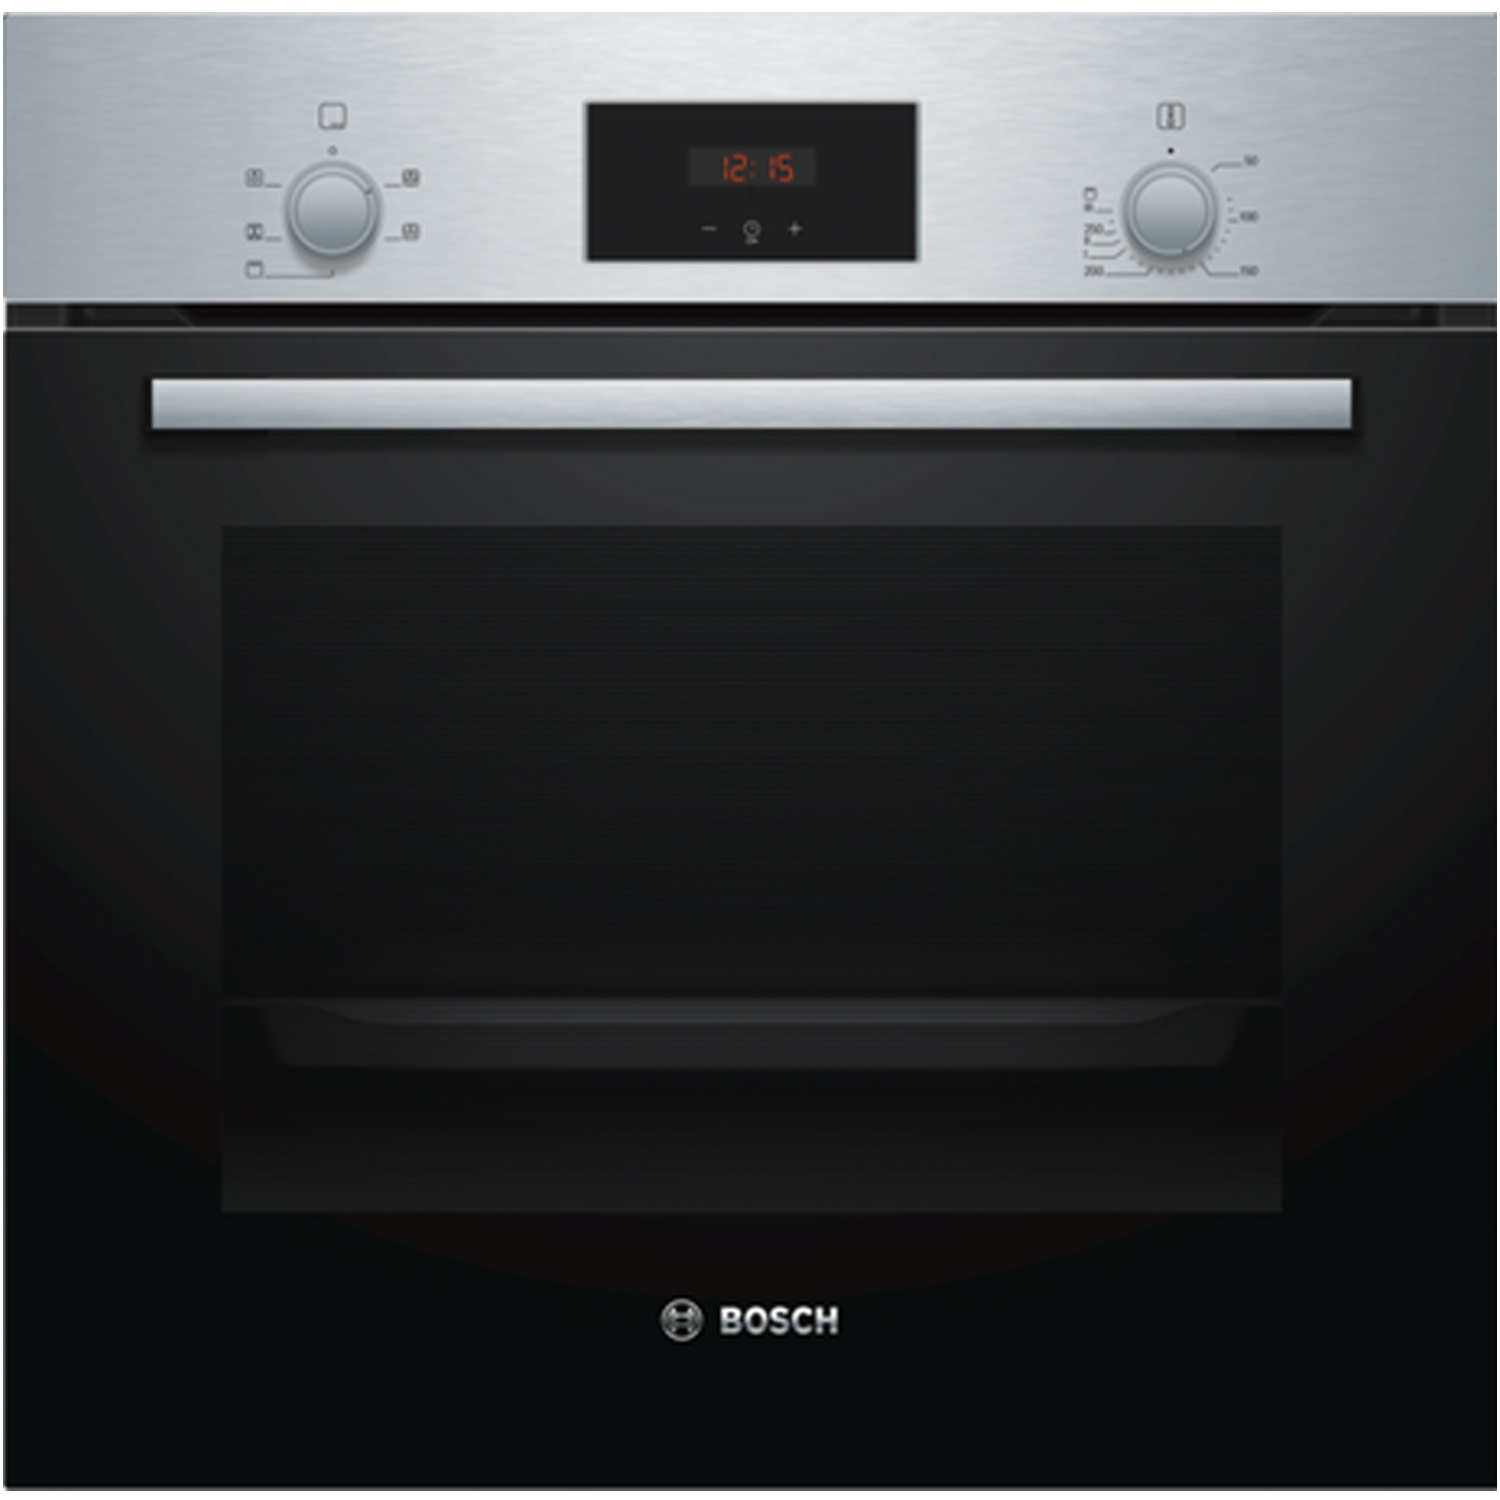 Bosch Serie 2 Built In Electric Single Oven with 3D Hot Air - Stainless Steel - A Rated - 0